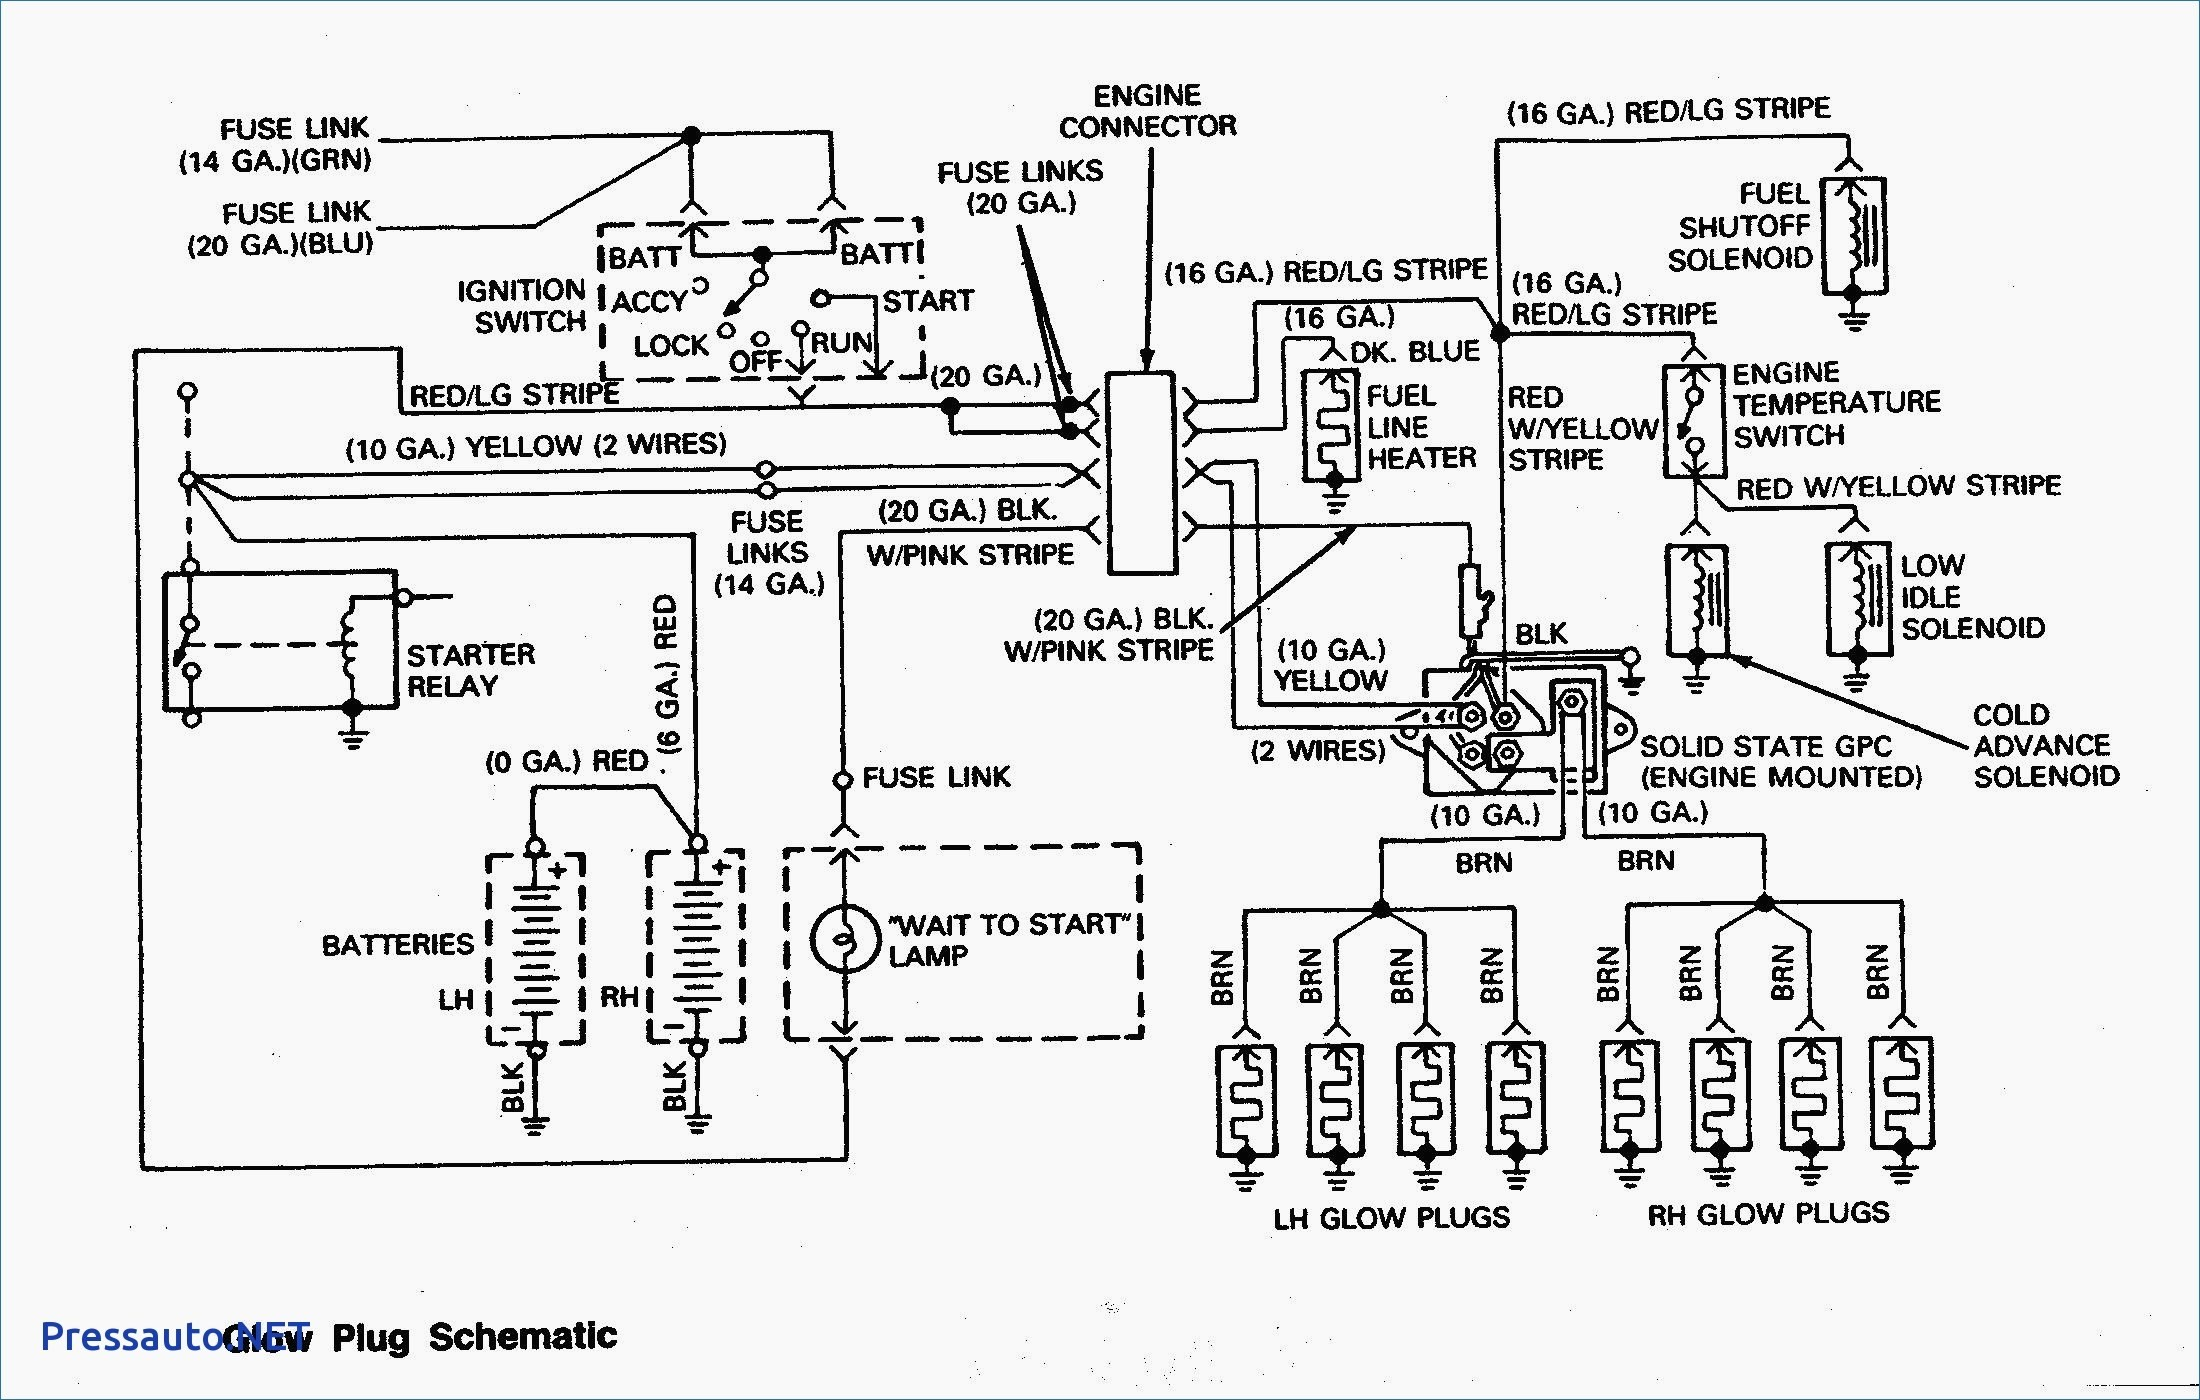 Ford 7 3 Diesel Engine Diagram 2 F350 7 3 Glow Plug Wiring Diagram Further 7 3 Glow Plug Wiring Of Ford 7 3 Diesel Engine Diagram 2